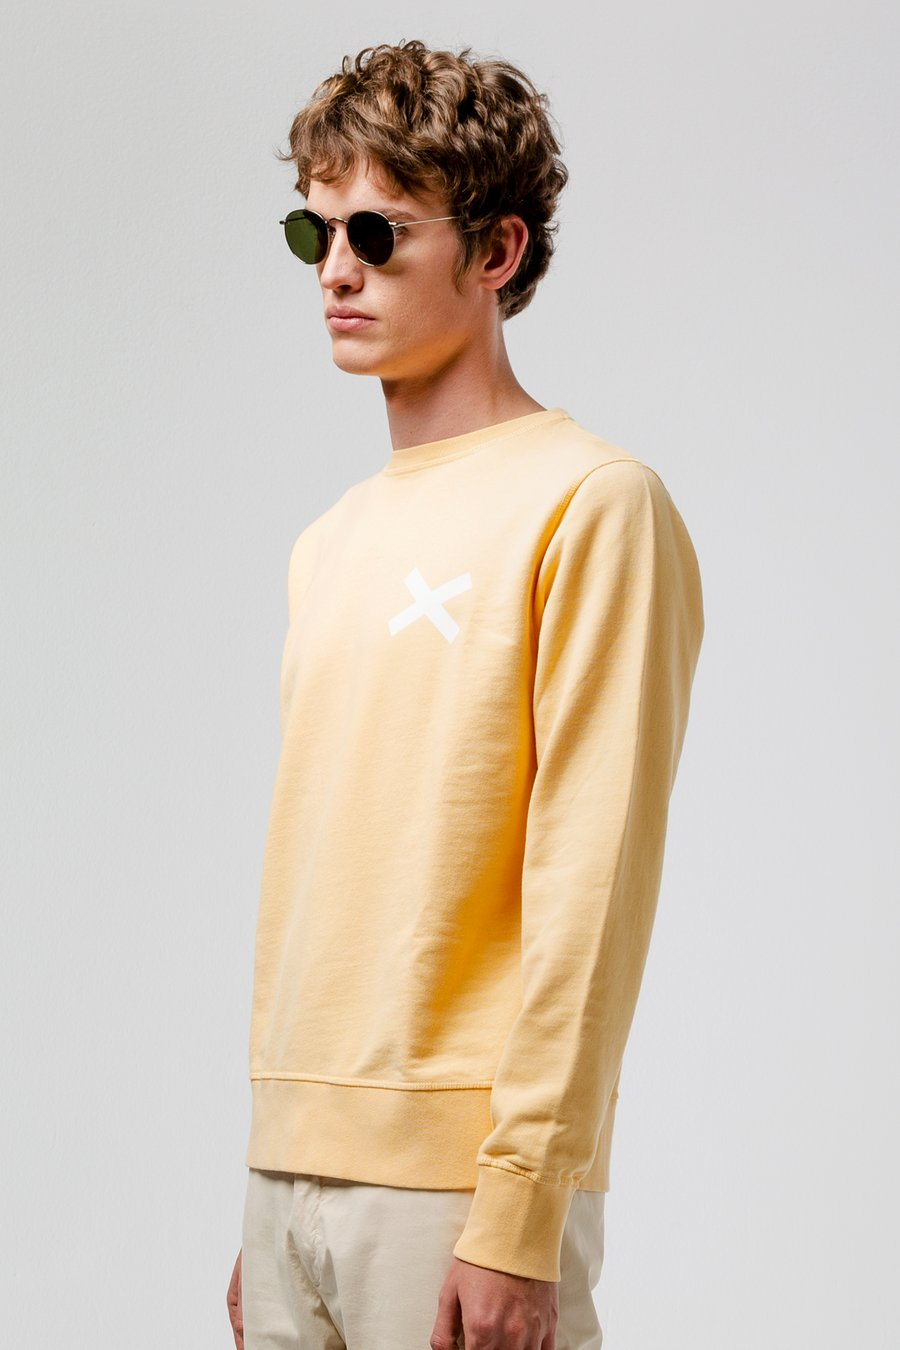 Edmmond cross sweater plain yellow